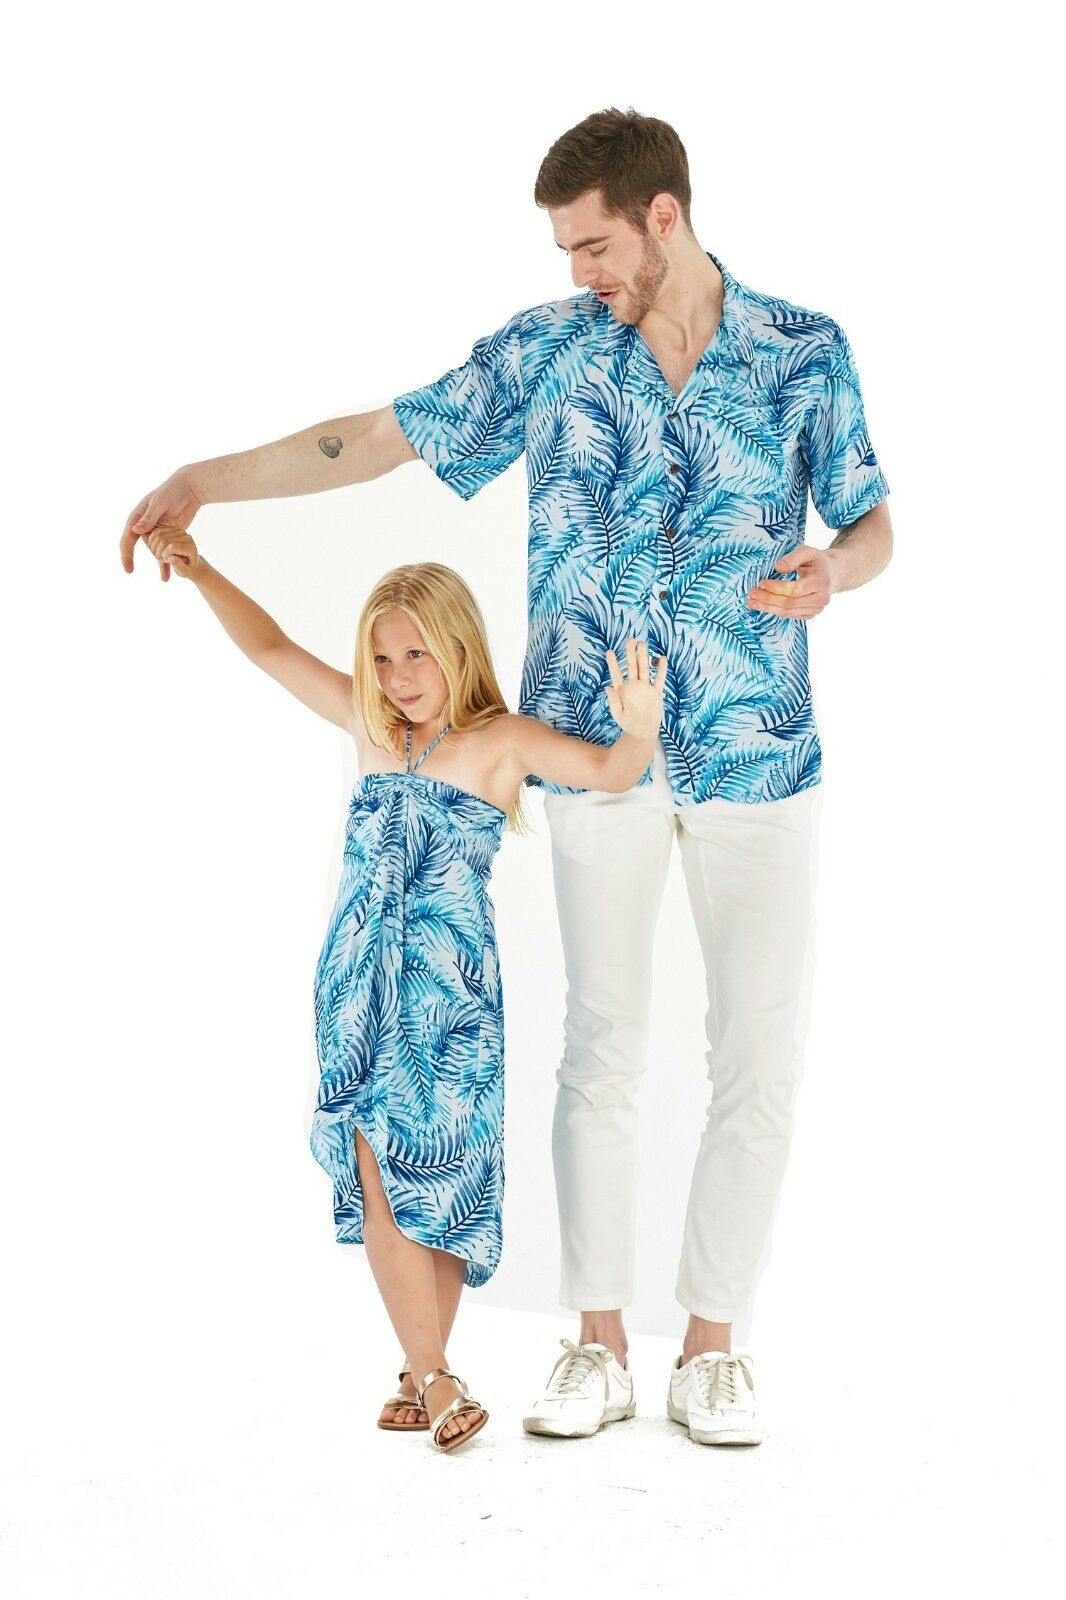 Hawaii Hangover Father Daughter Matching Luau Cruse Outfit In Simply Blue Leaves